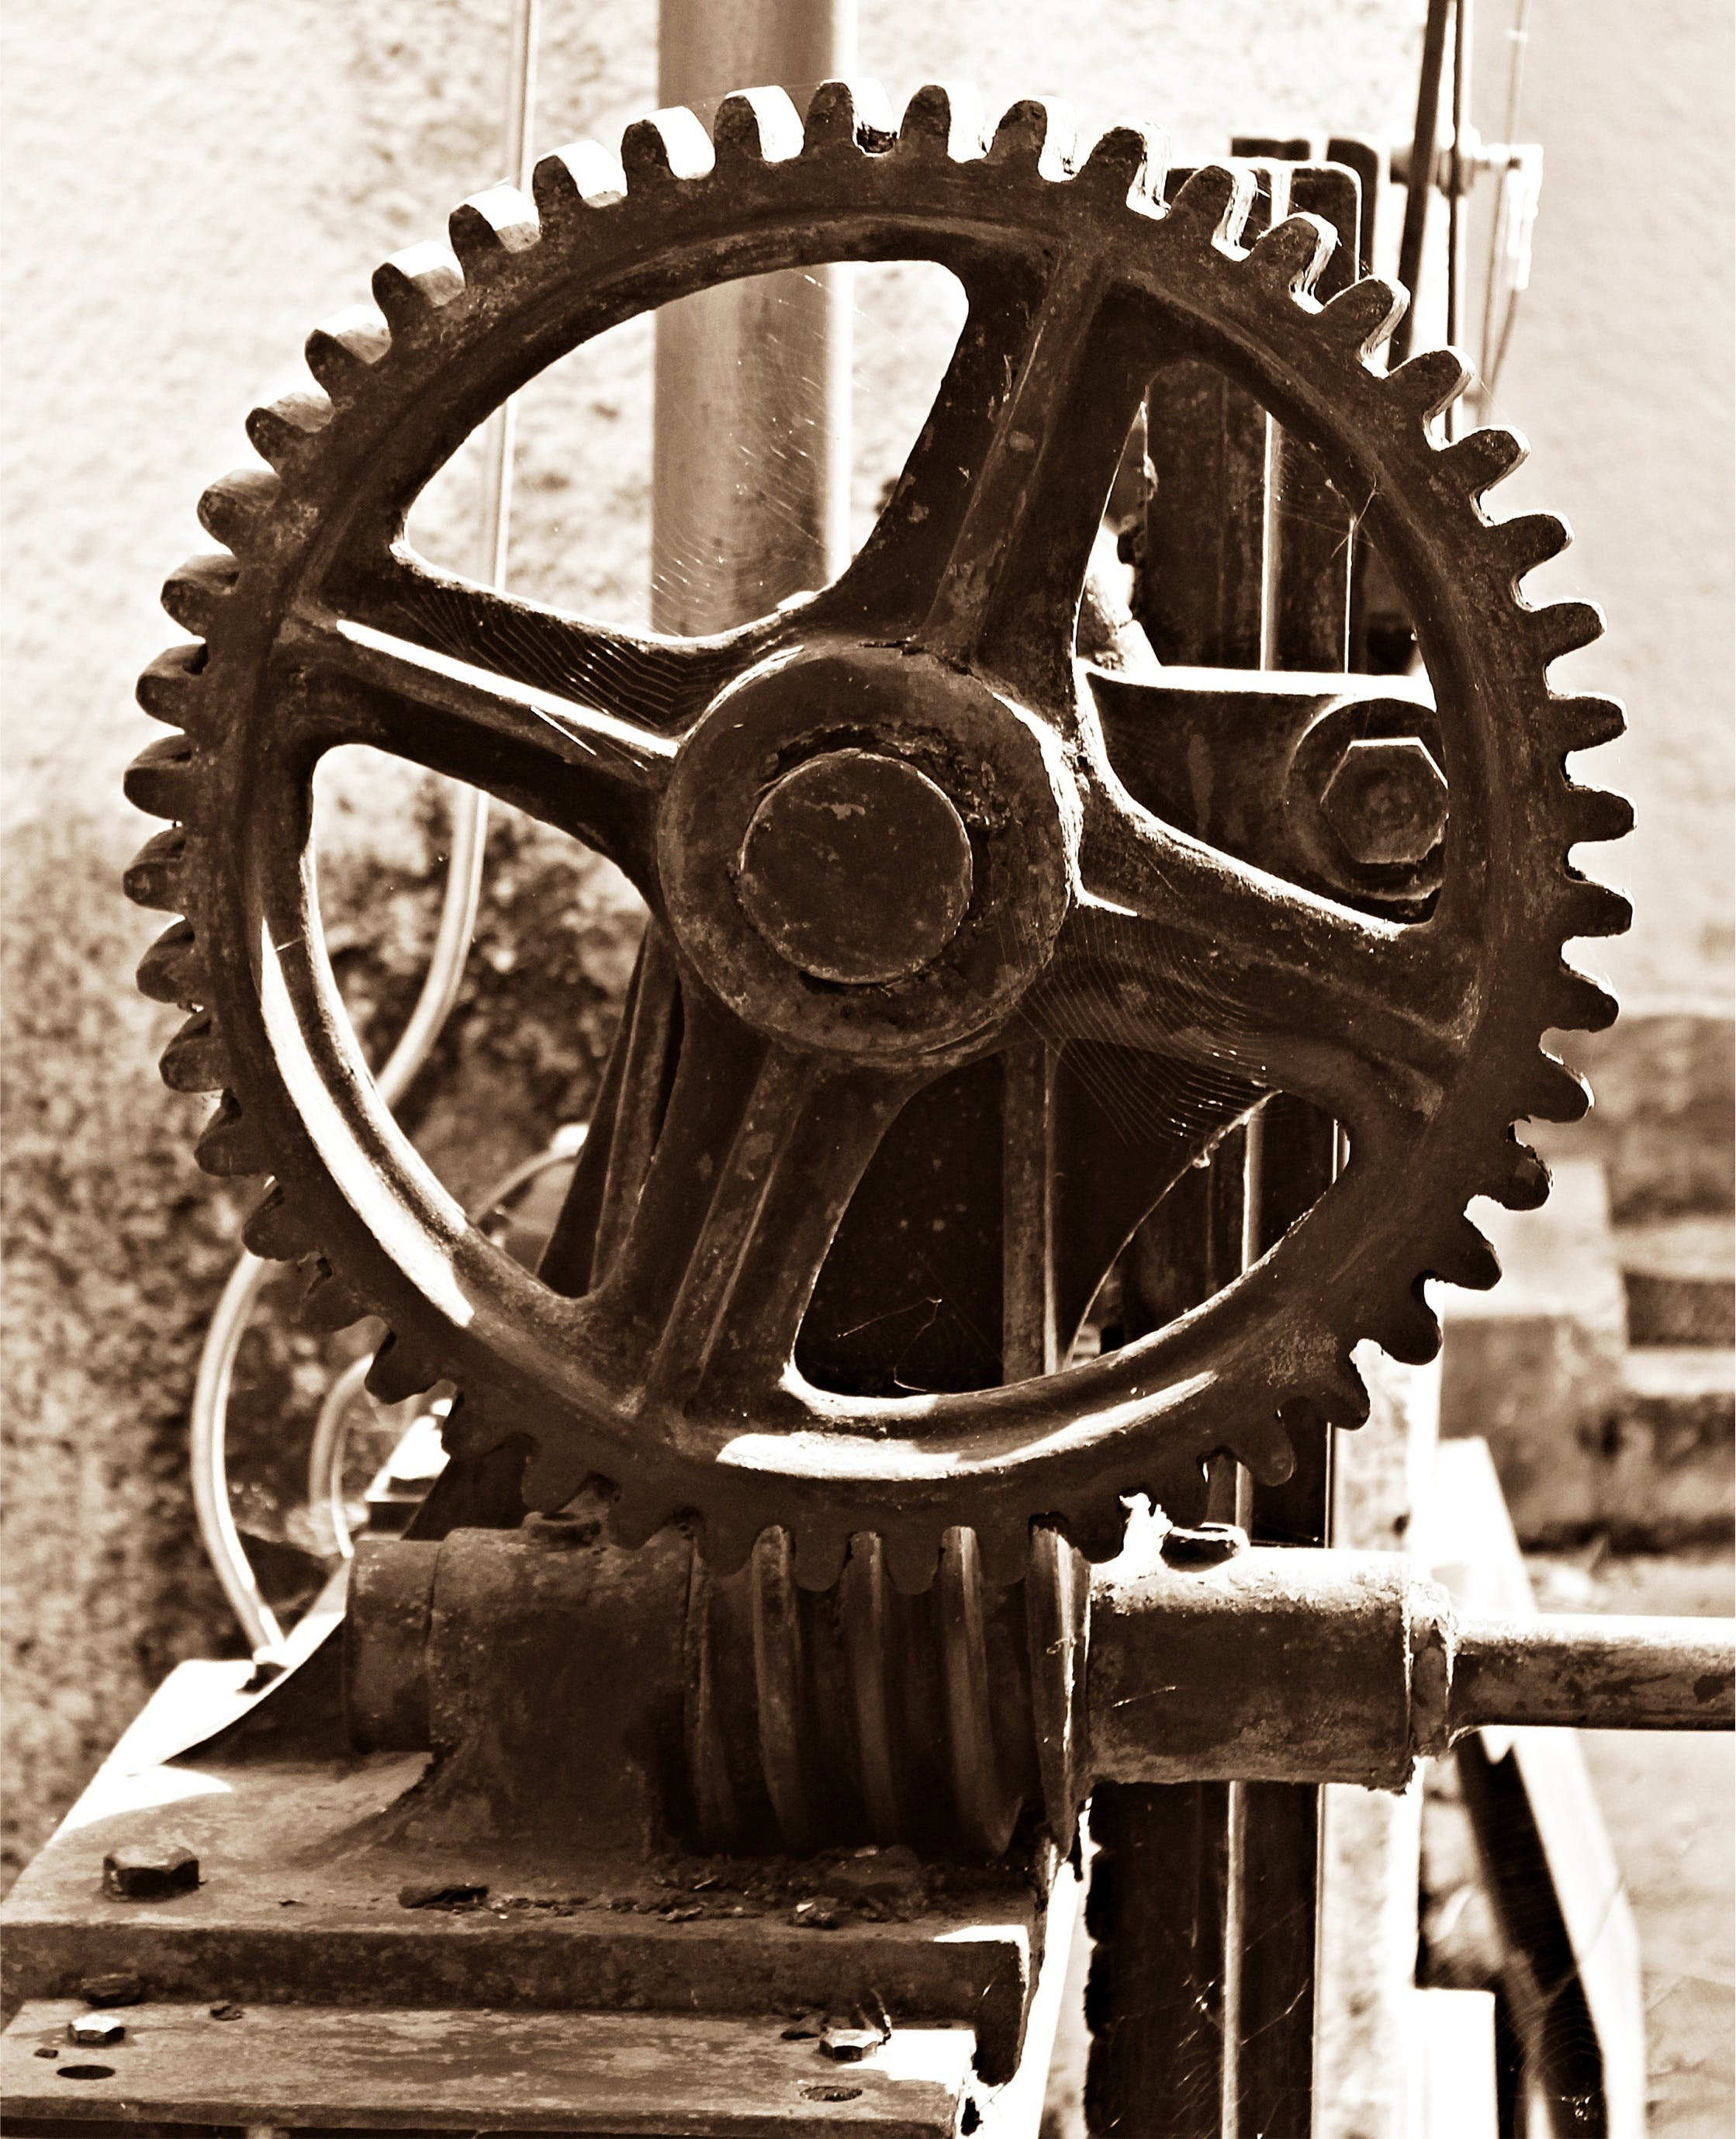 Free stock photo of technology, wheels, drive, gears